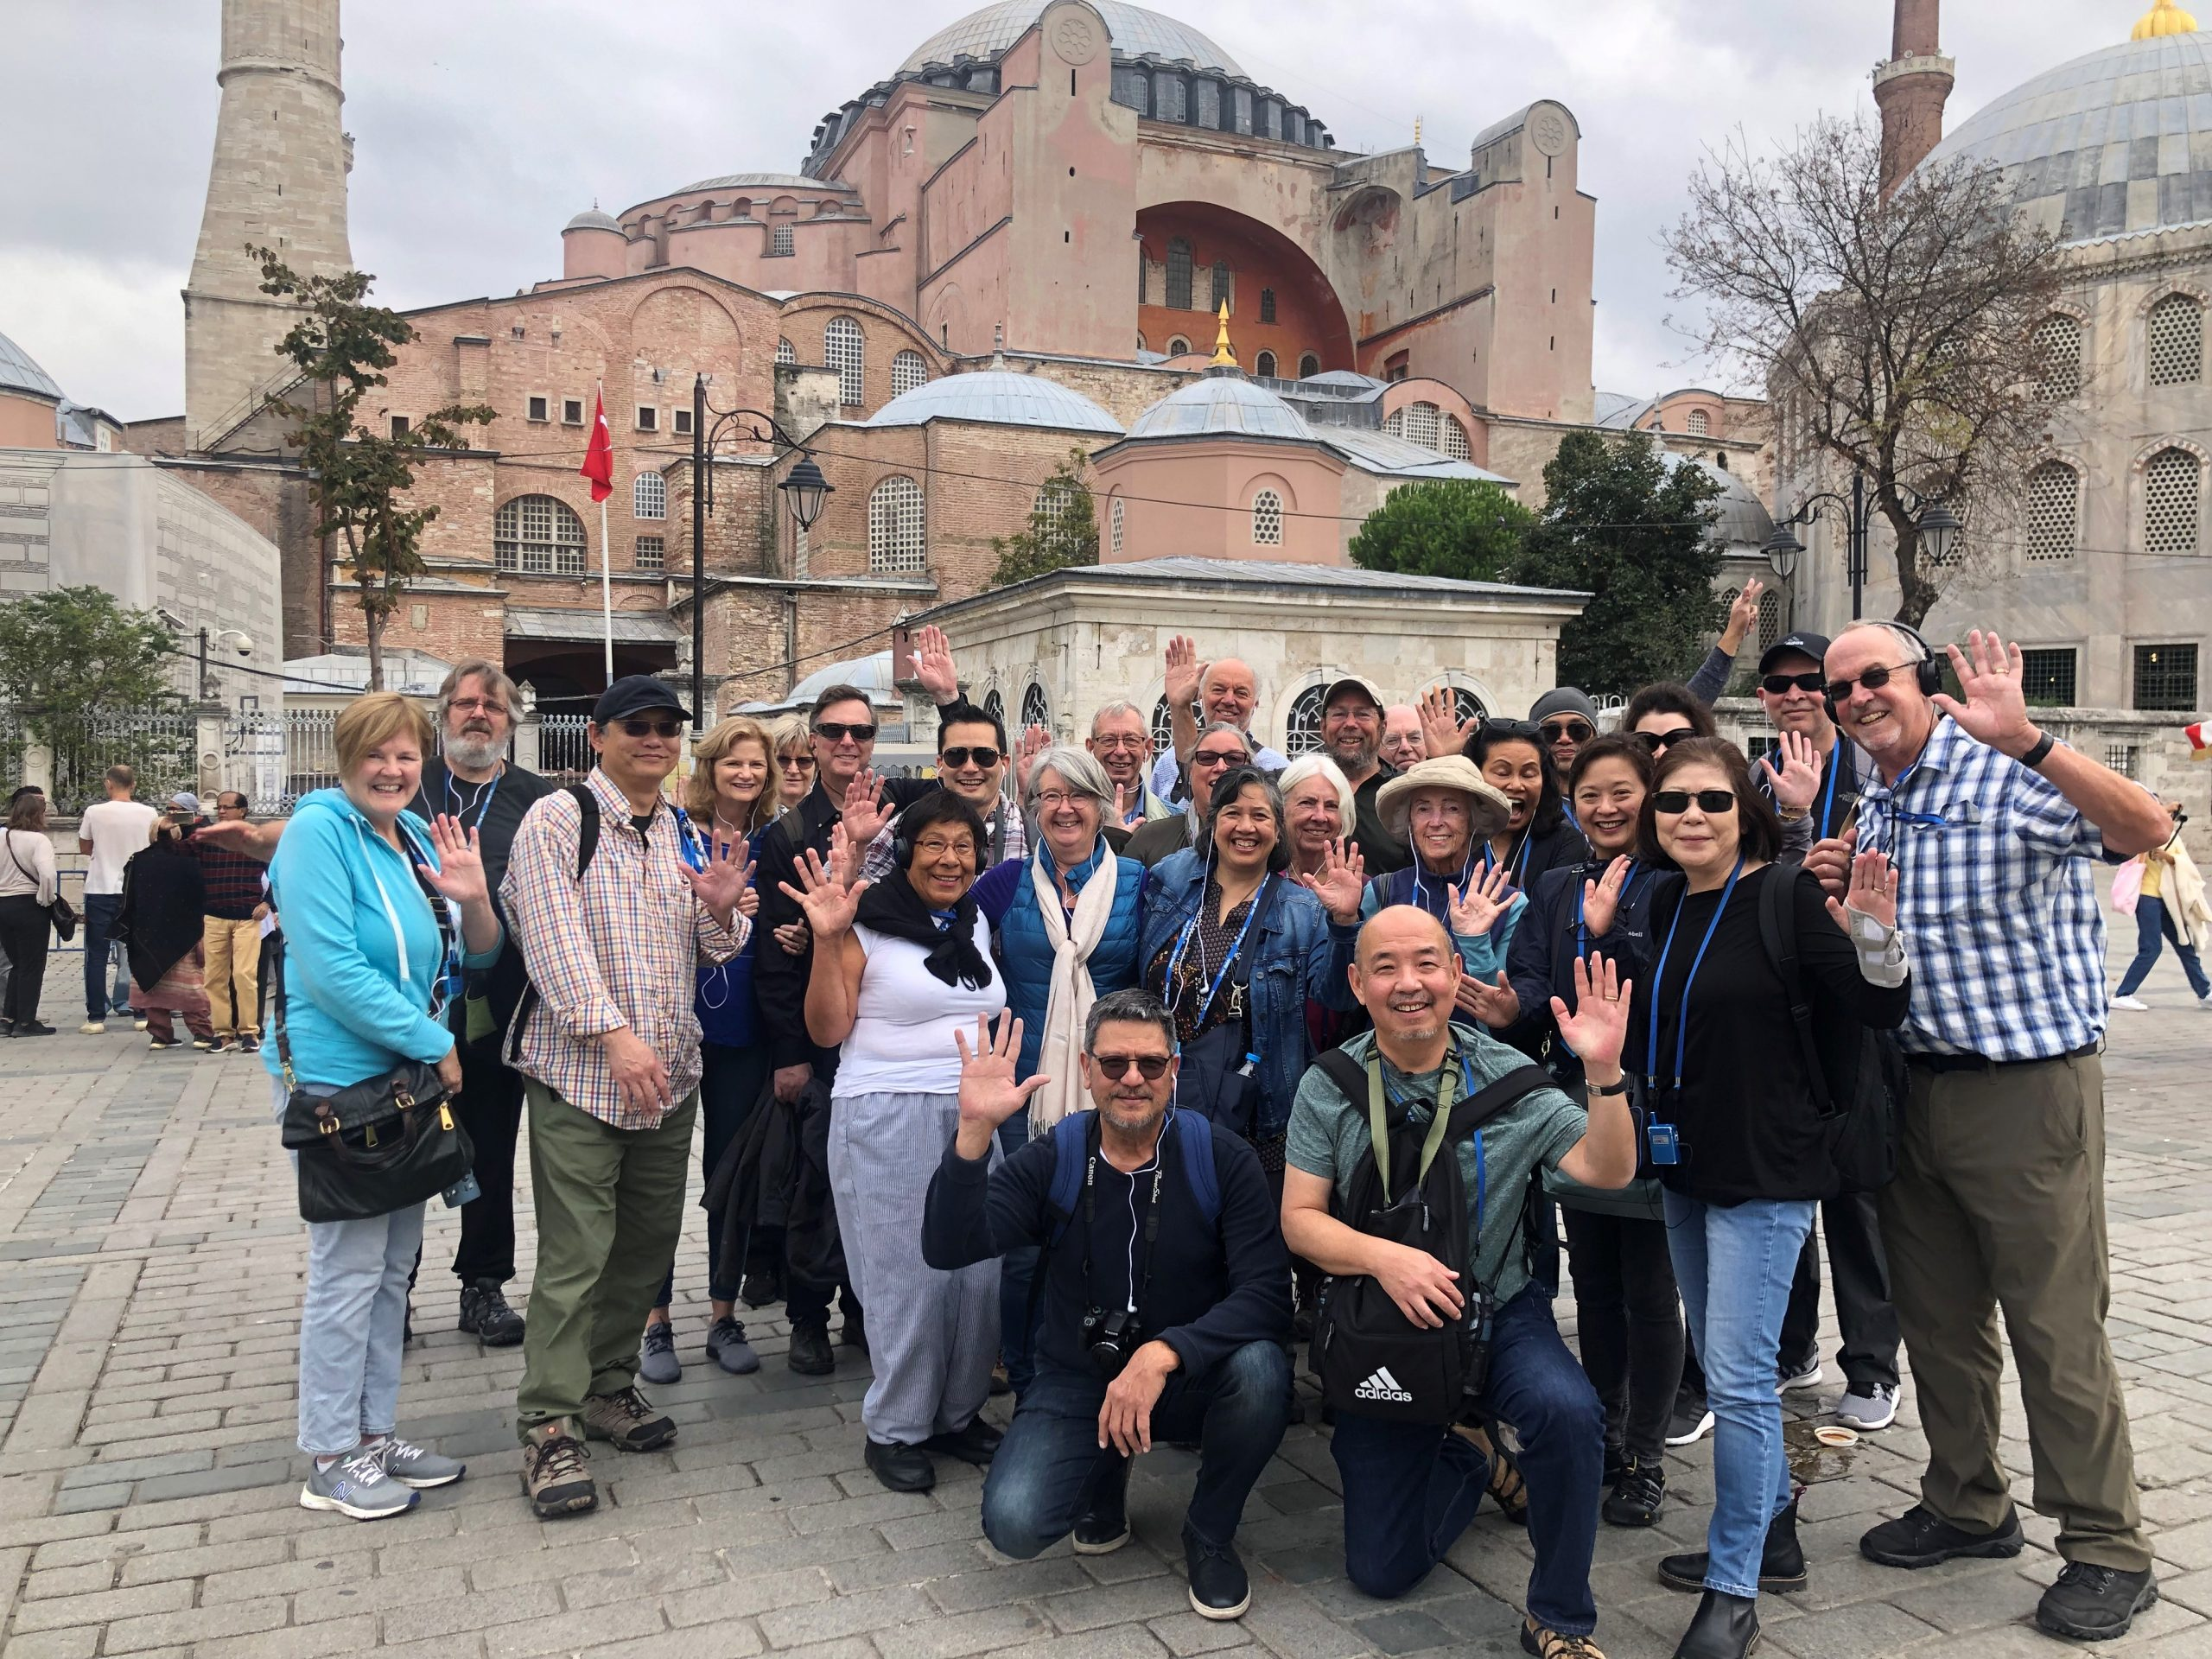 photo of group in front of building in Turkey